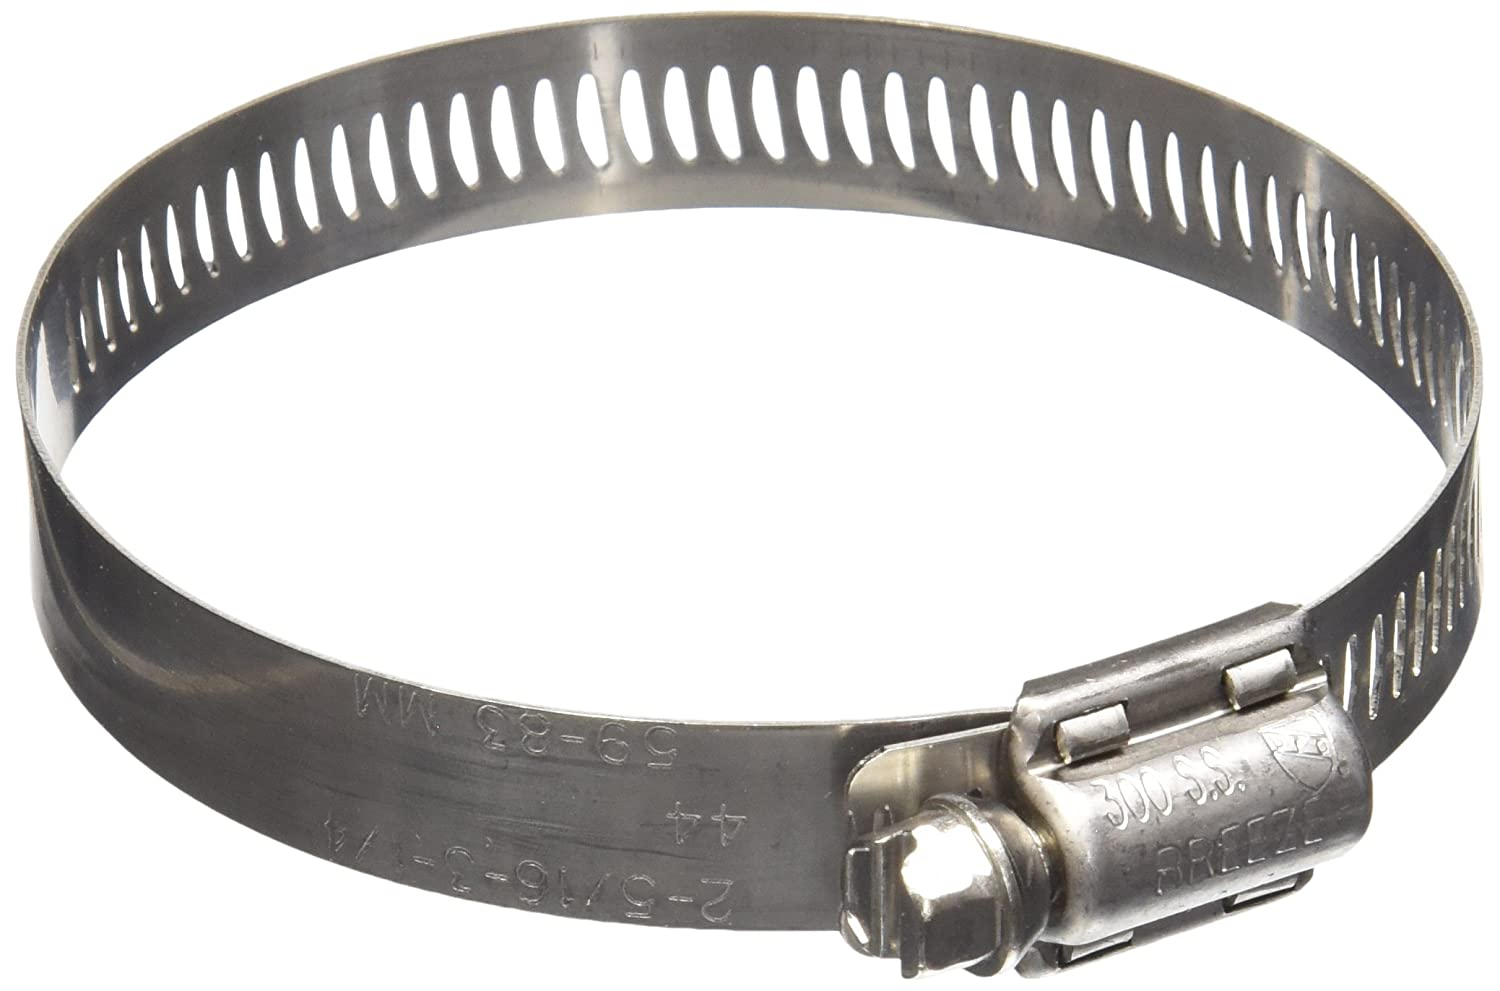 SAE Size 44 2-5//16 to 3-1//4 Diameter Range 1//2 Band Width 03610115059 Worm-Drive Pack of 10 Breeze 63044H Marine Grade Power-Seal Stainless Steel Hose Clamp Pack of 10 2-5//16 to 3-1//4 Diameter Range 1//2 Band Width